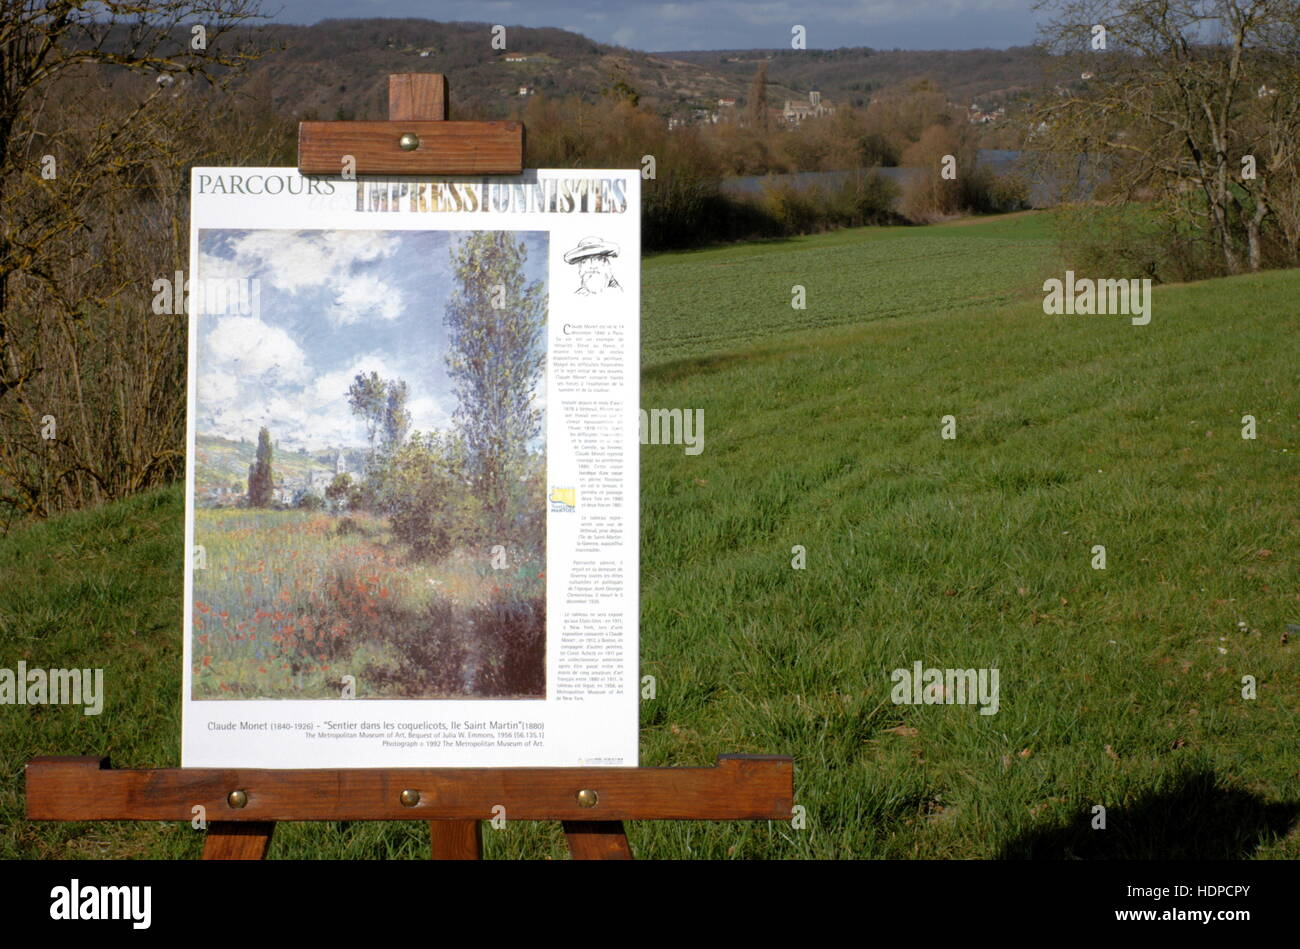 AJAXNETPHOTO. 2006. ILE SAINT MARTIN (NEAR),FRANCE. - IMPRESSIONIST PAINTER LANDSCAPE - POSTER DEPICTING THE CLAUDE Stock Photo